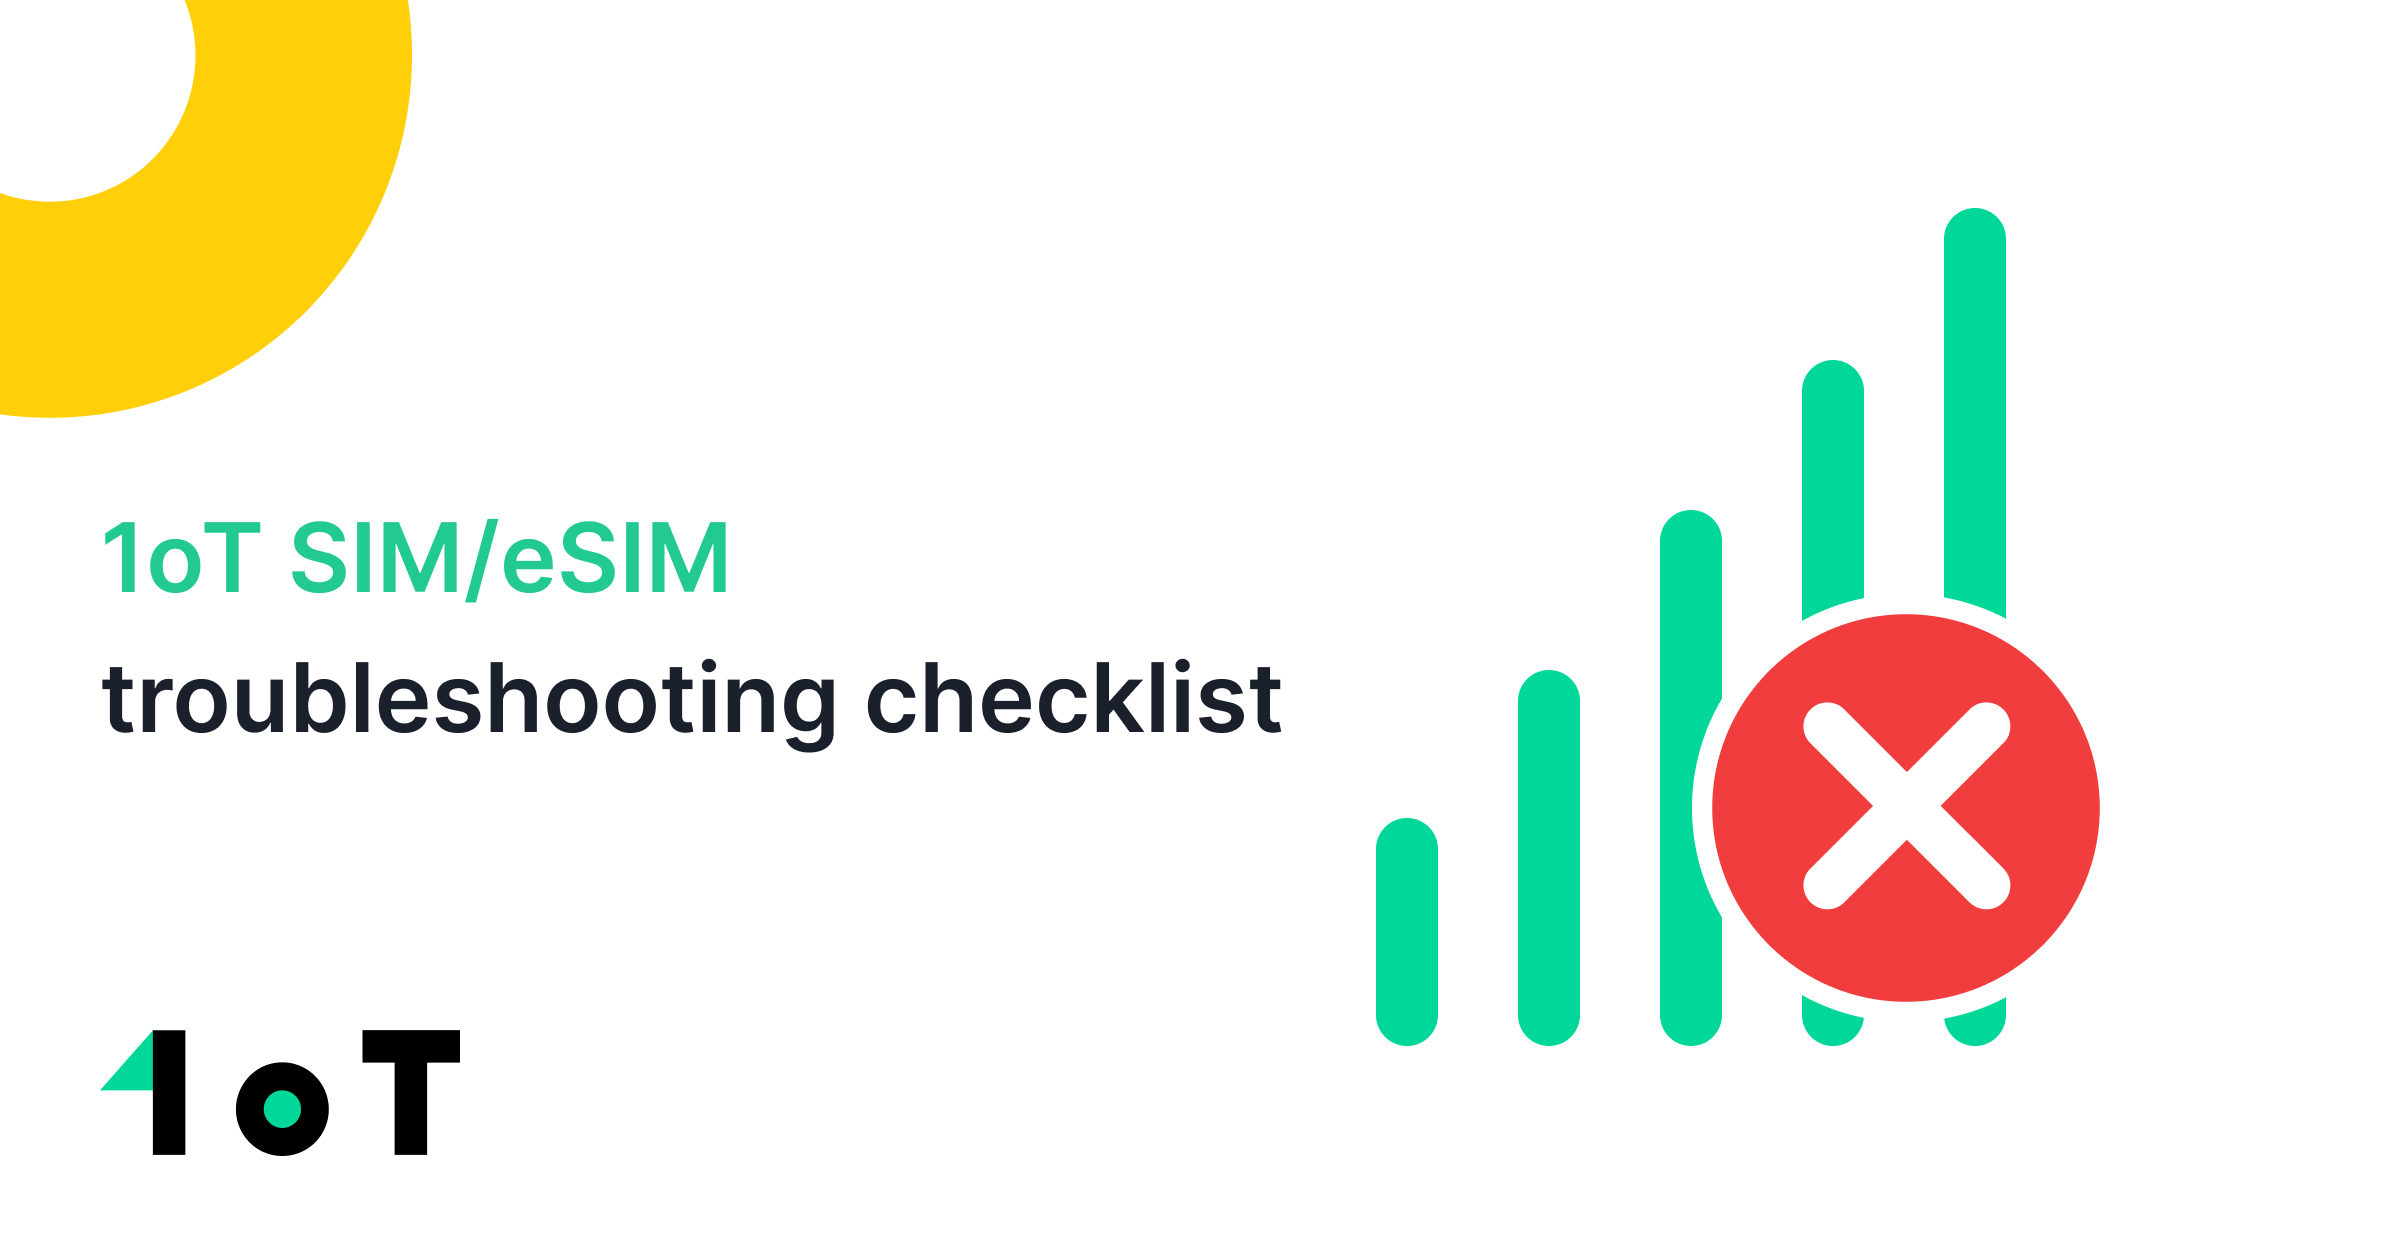 Article cover image for SIM/eSIM troubleshooting checklist